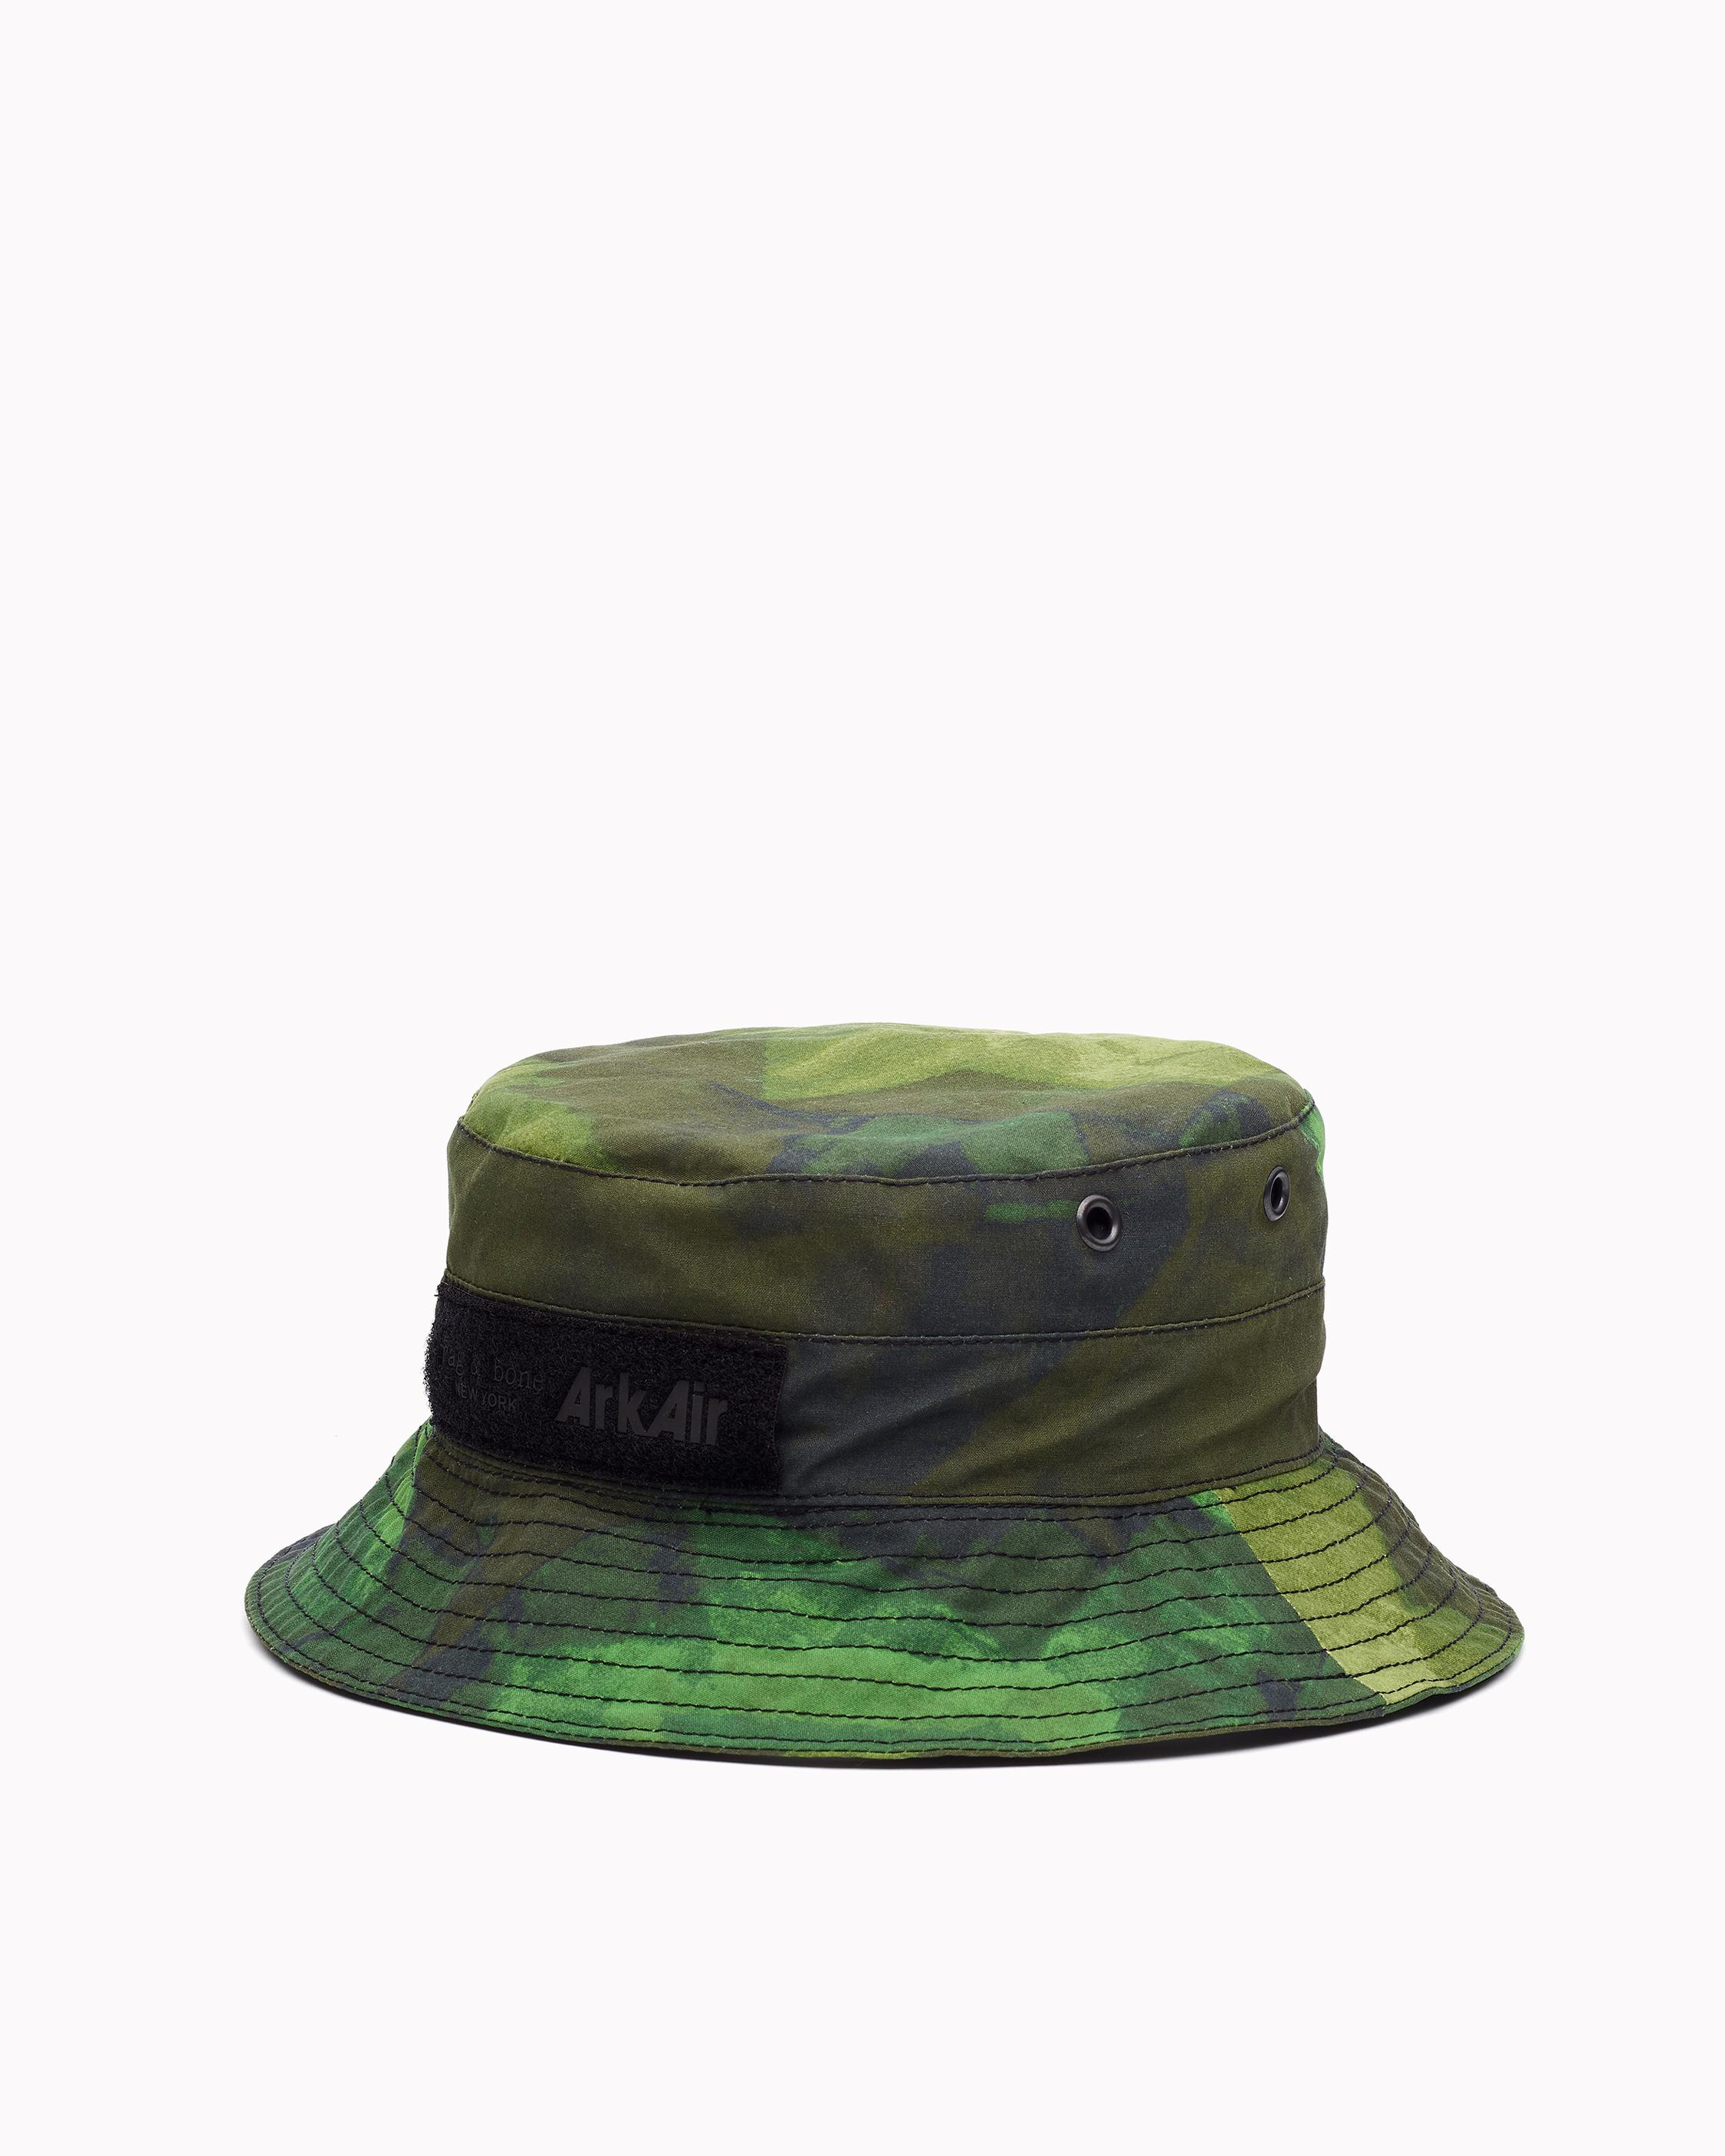 ARKAIR BUCKET HAT